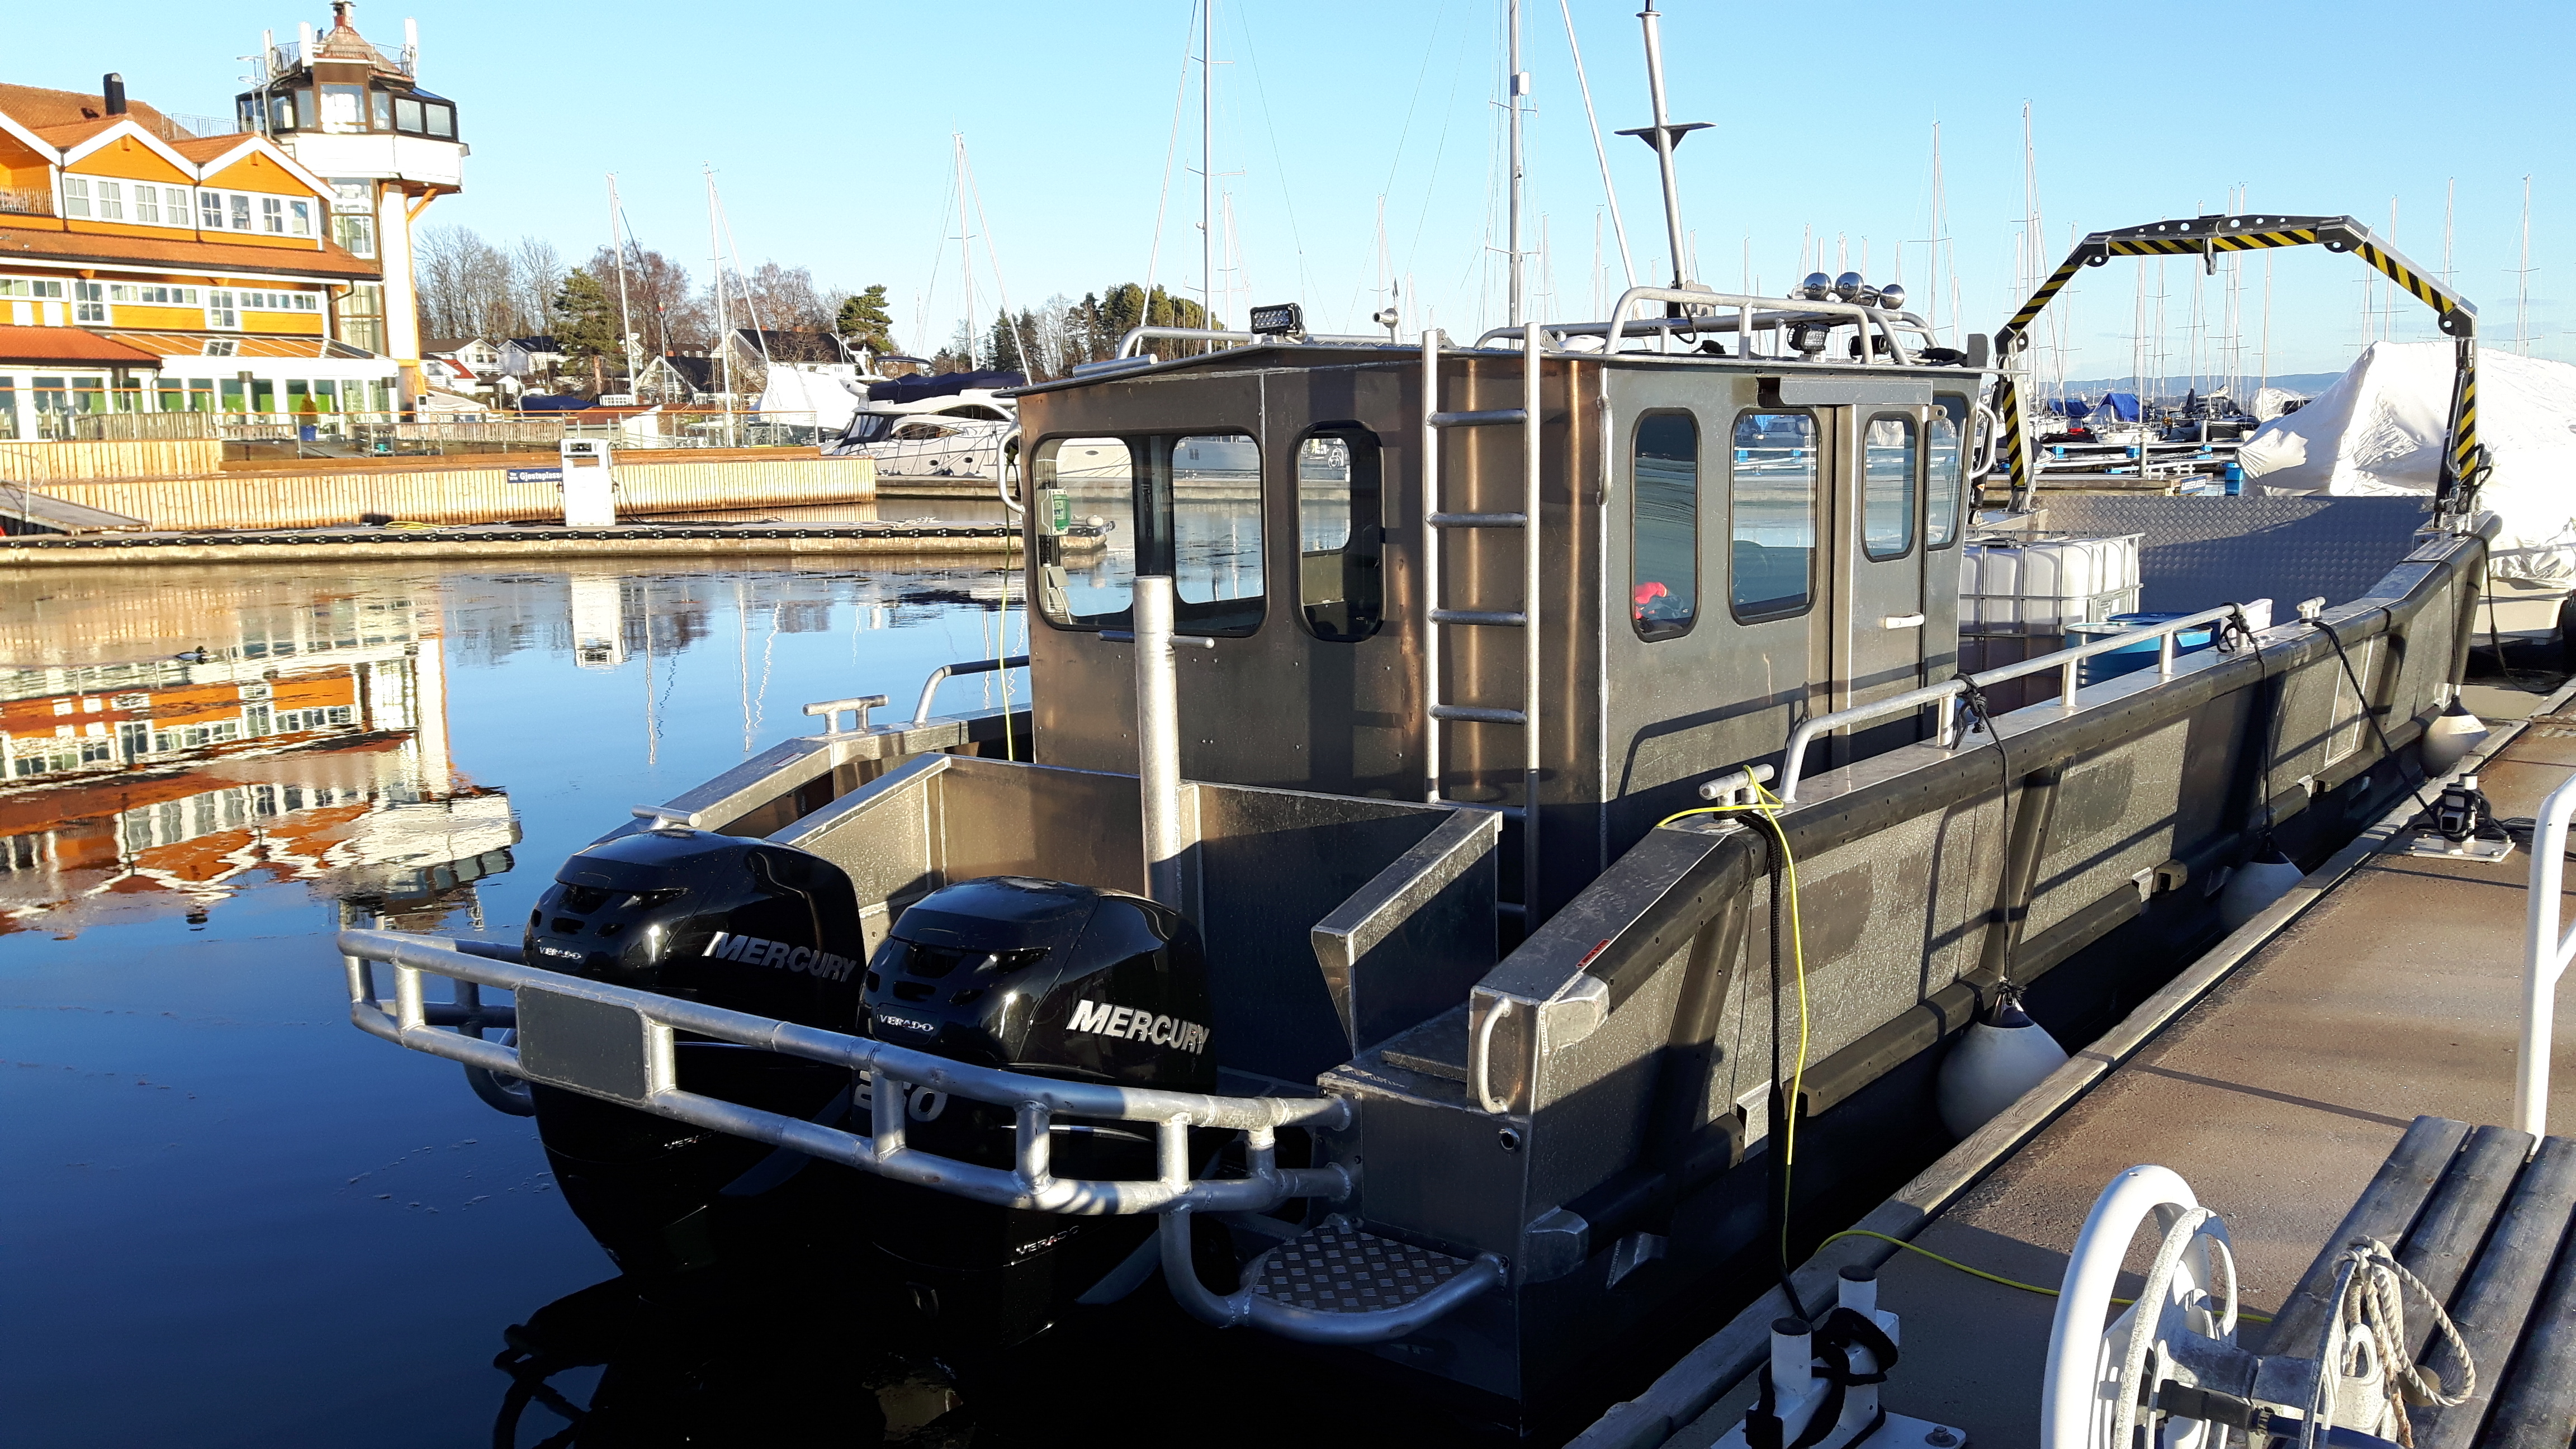 united boats com aft xlarge carver kenosha boat for power yachtworld wi cabin states cabins sale